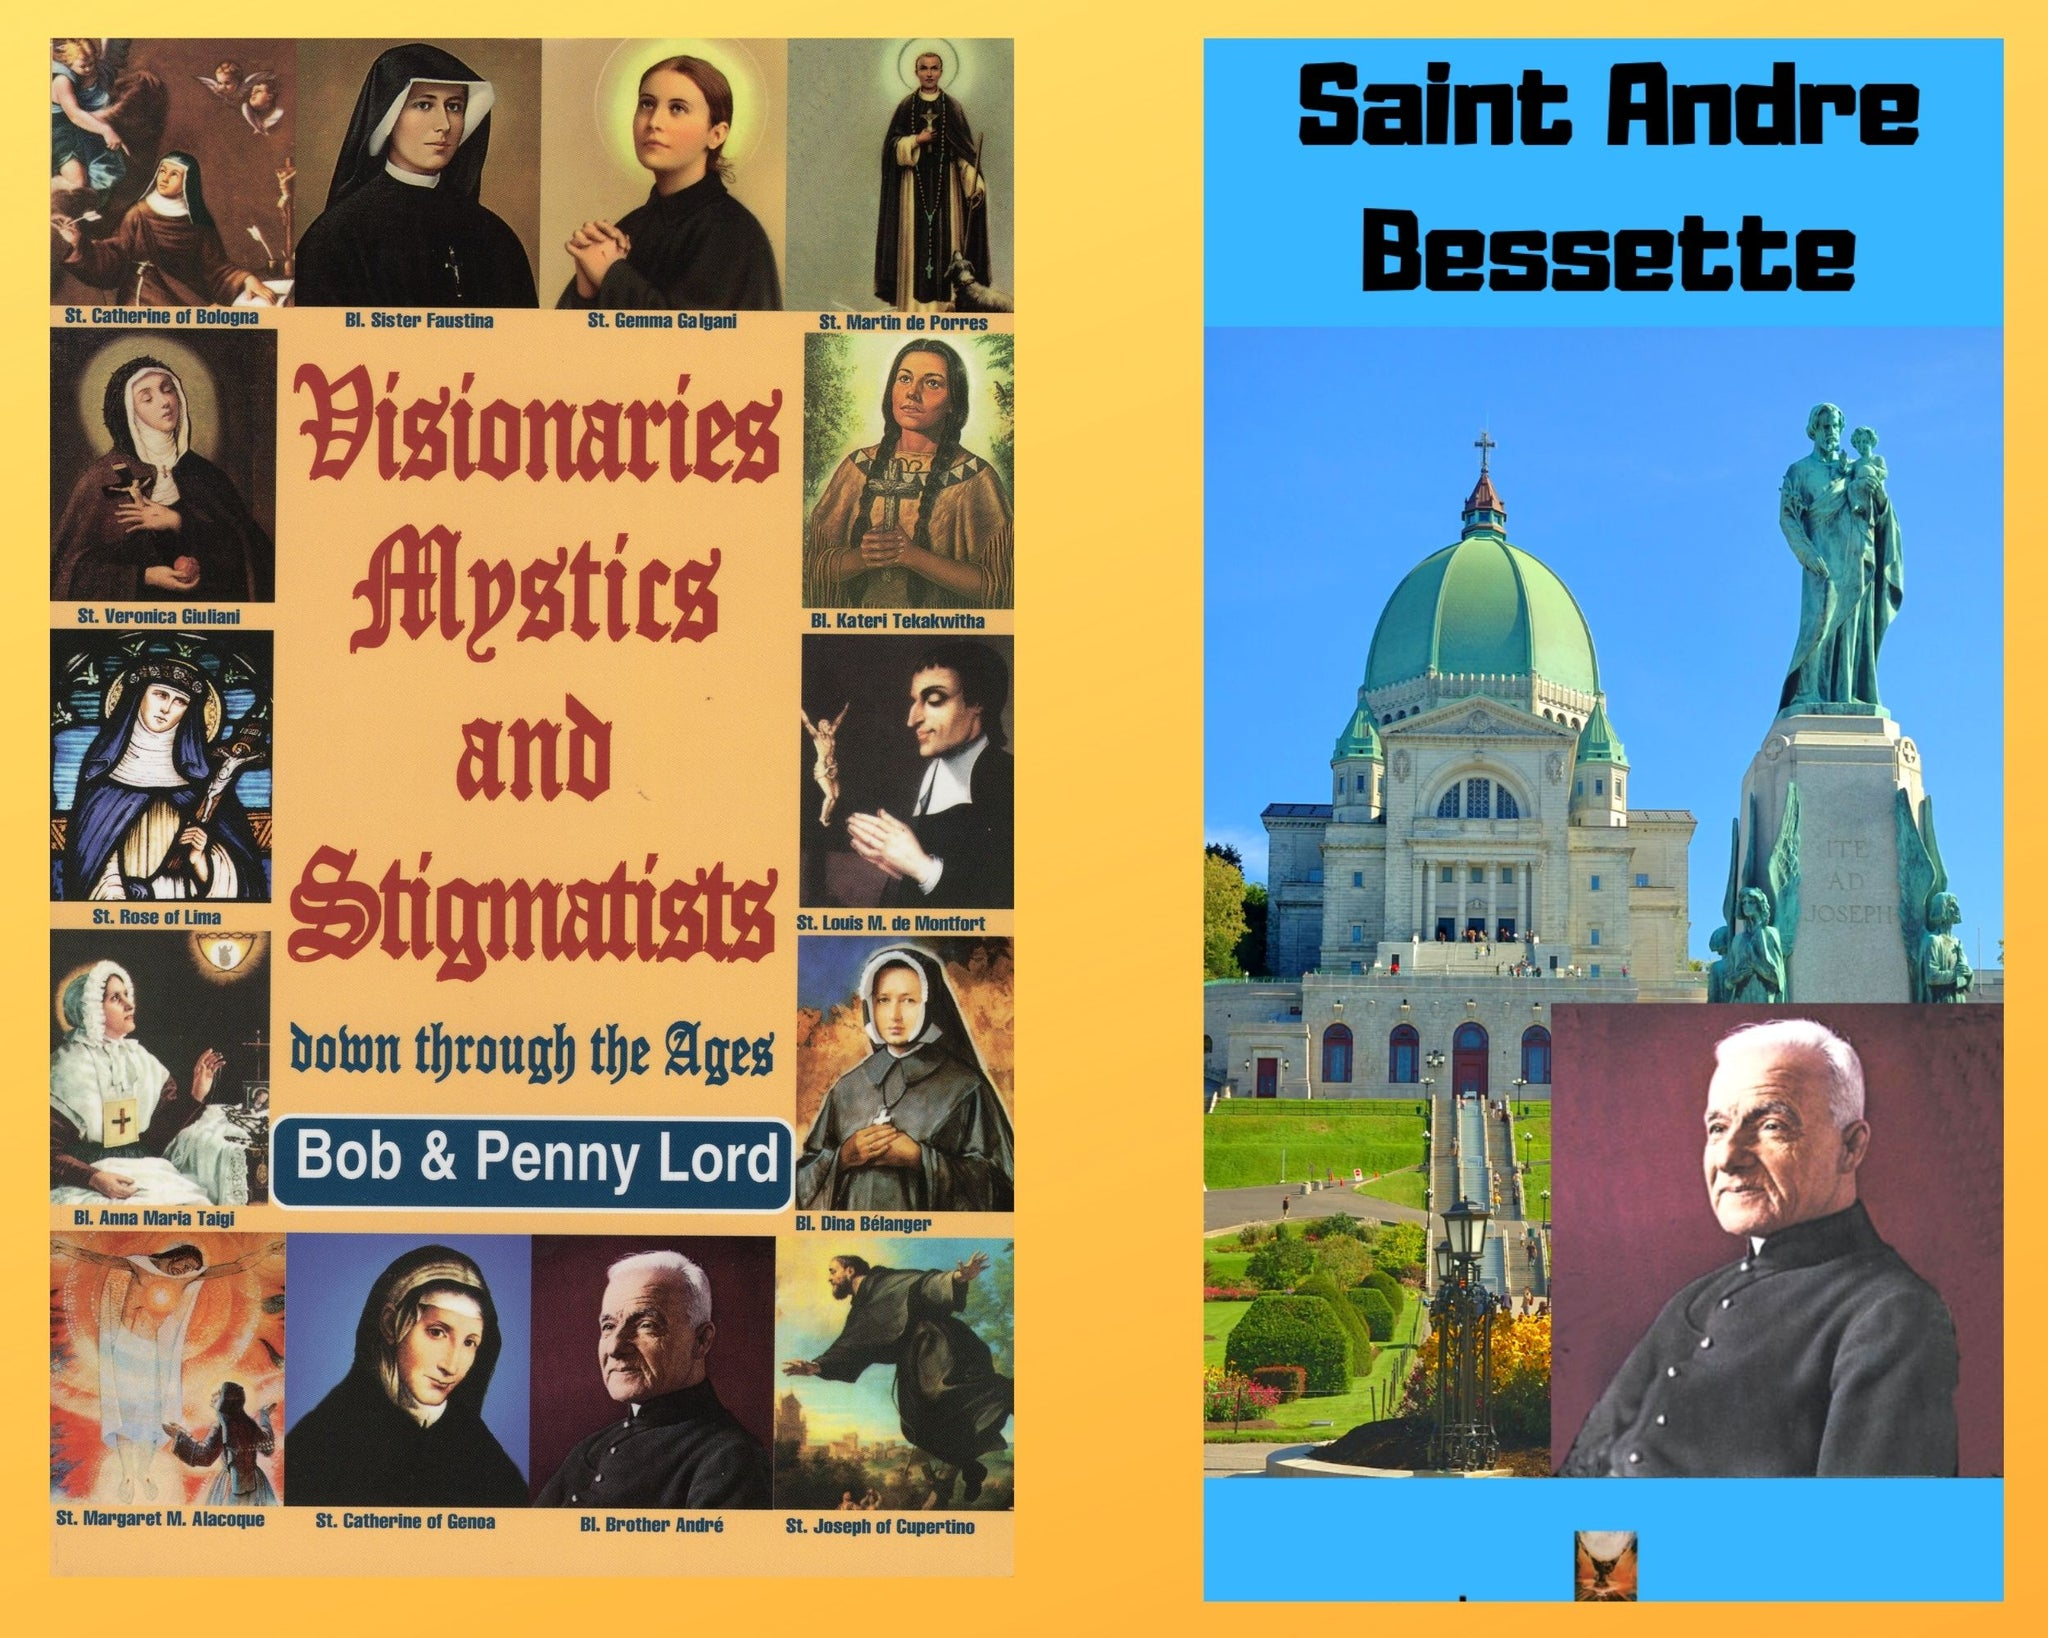 Visionaries Mystics and Stigmatists Book and Companion Saint Andre Bessette DVD - Bob and Penny Lord